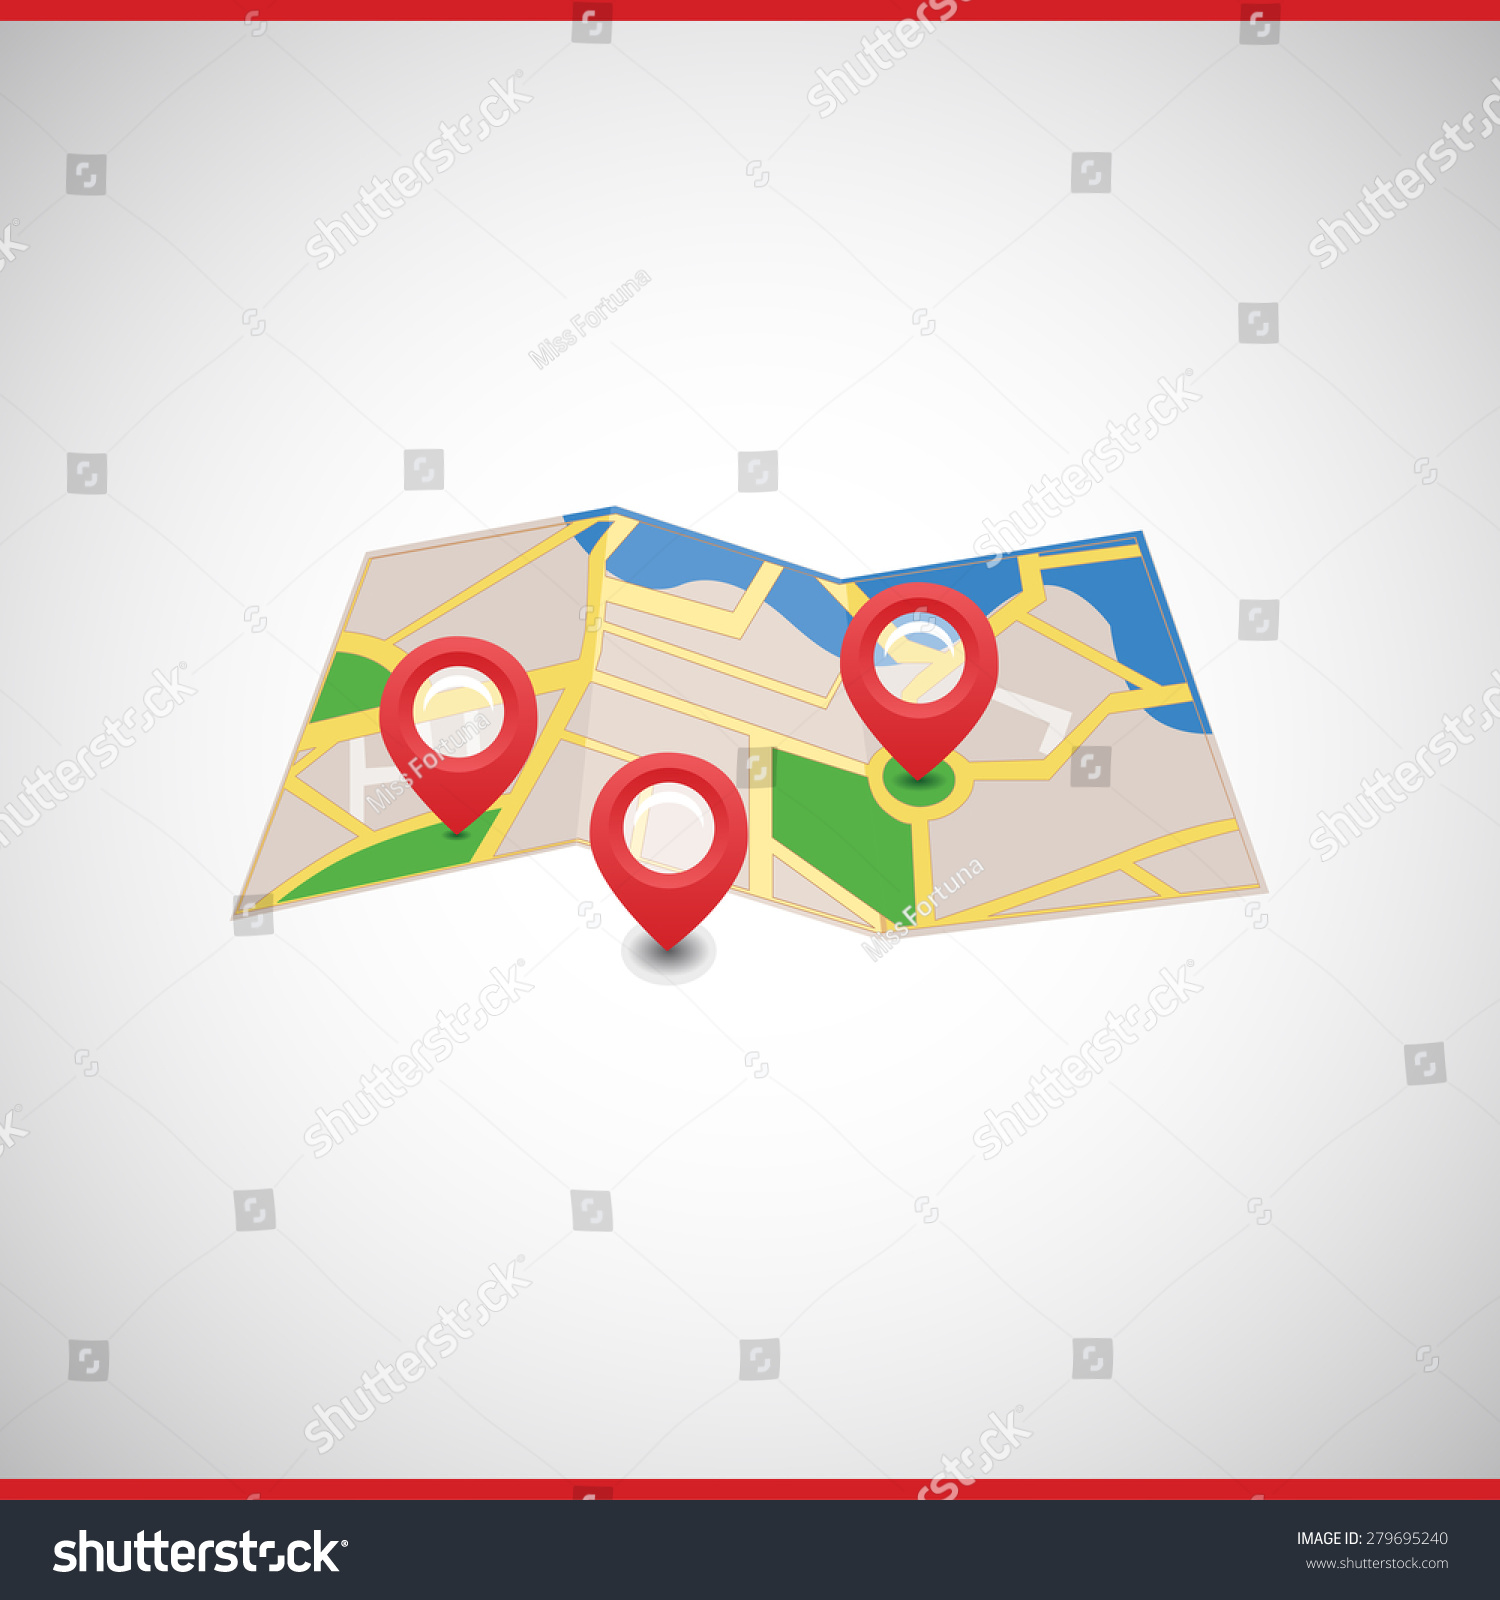 Vector map markers symbols icon index stock vector 279695240 vector map with markers and symbols icon and index the road and the orientation biocorpaavc Gallery